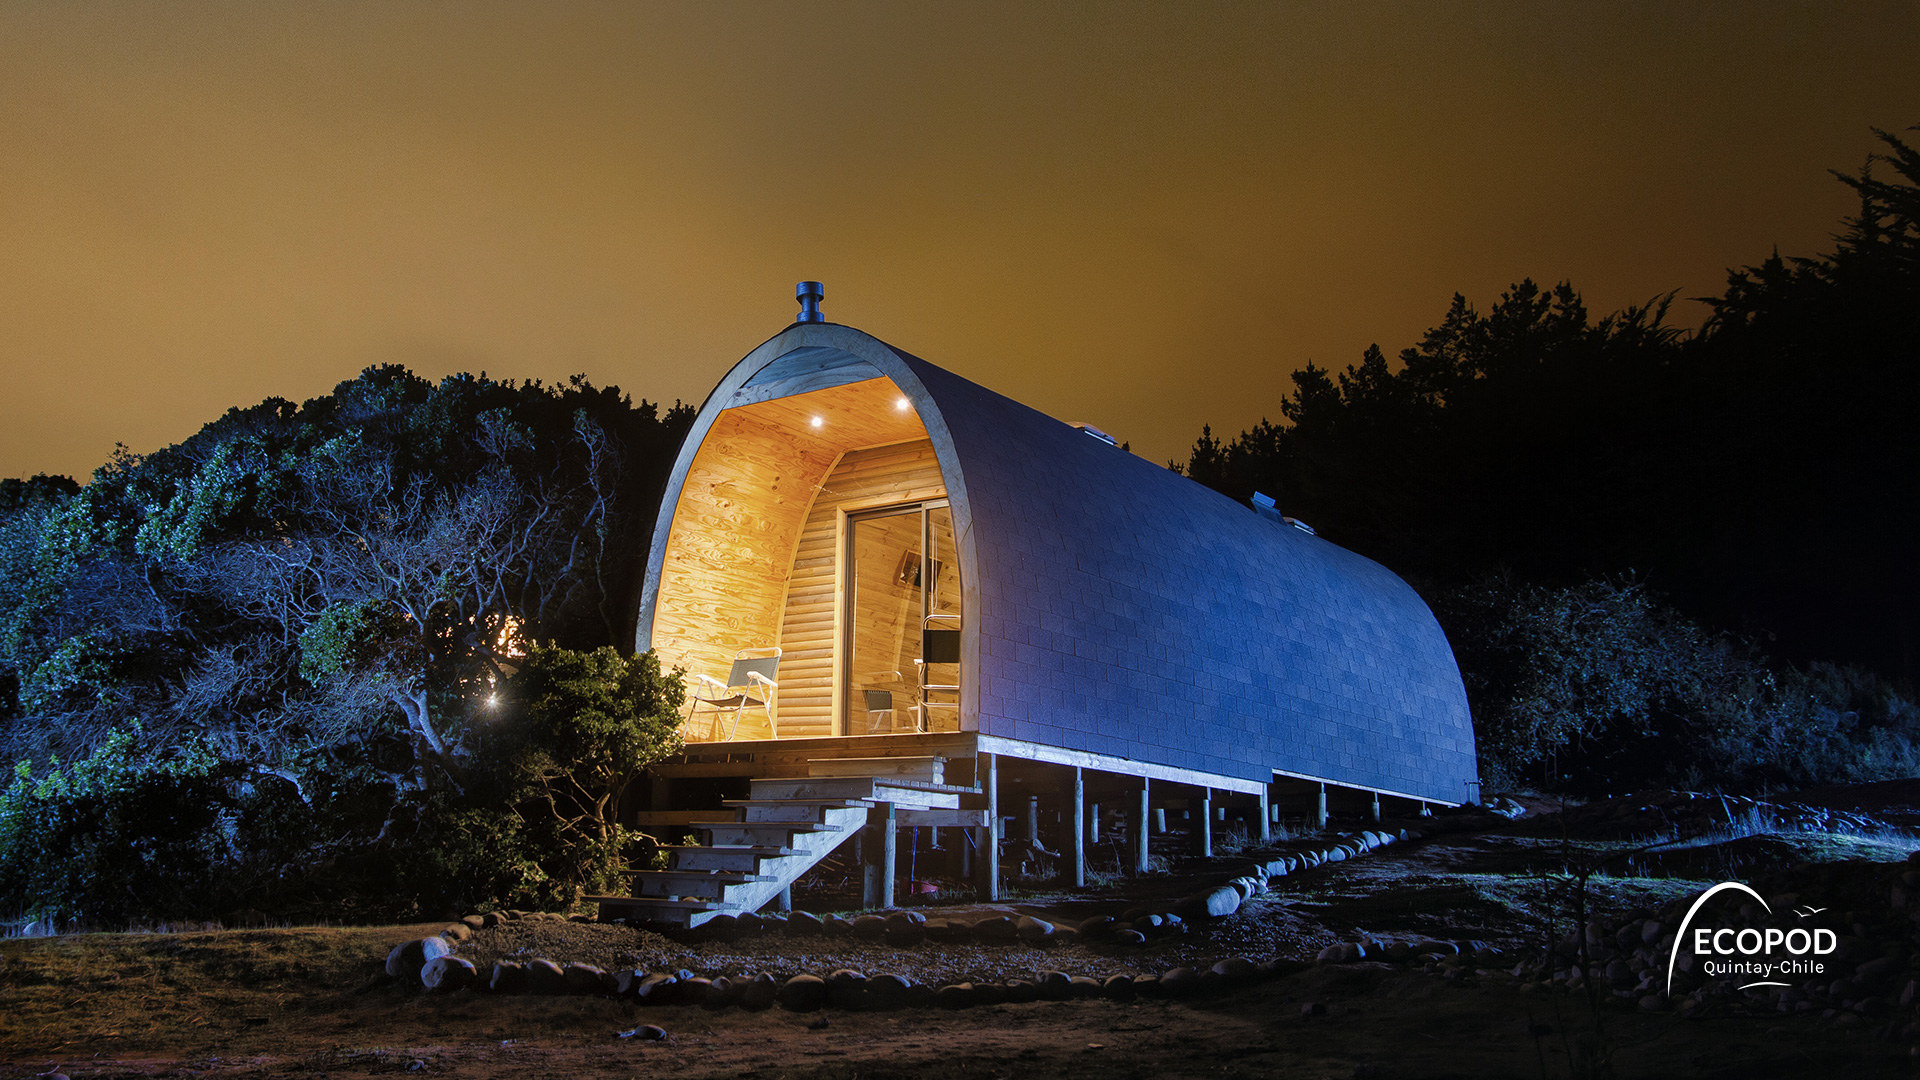 A domed wooden hut with a big glass foor